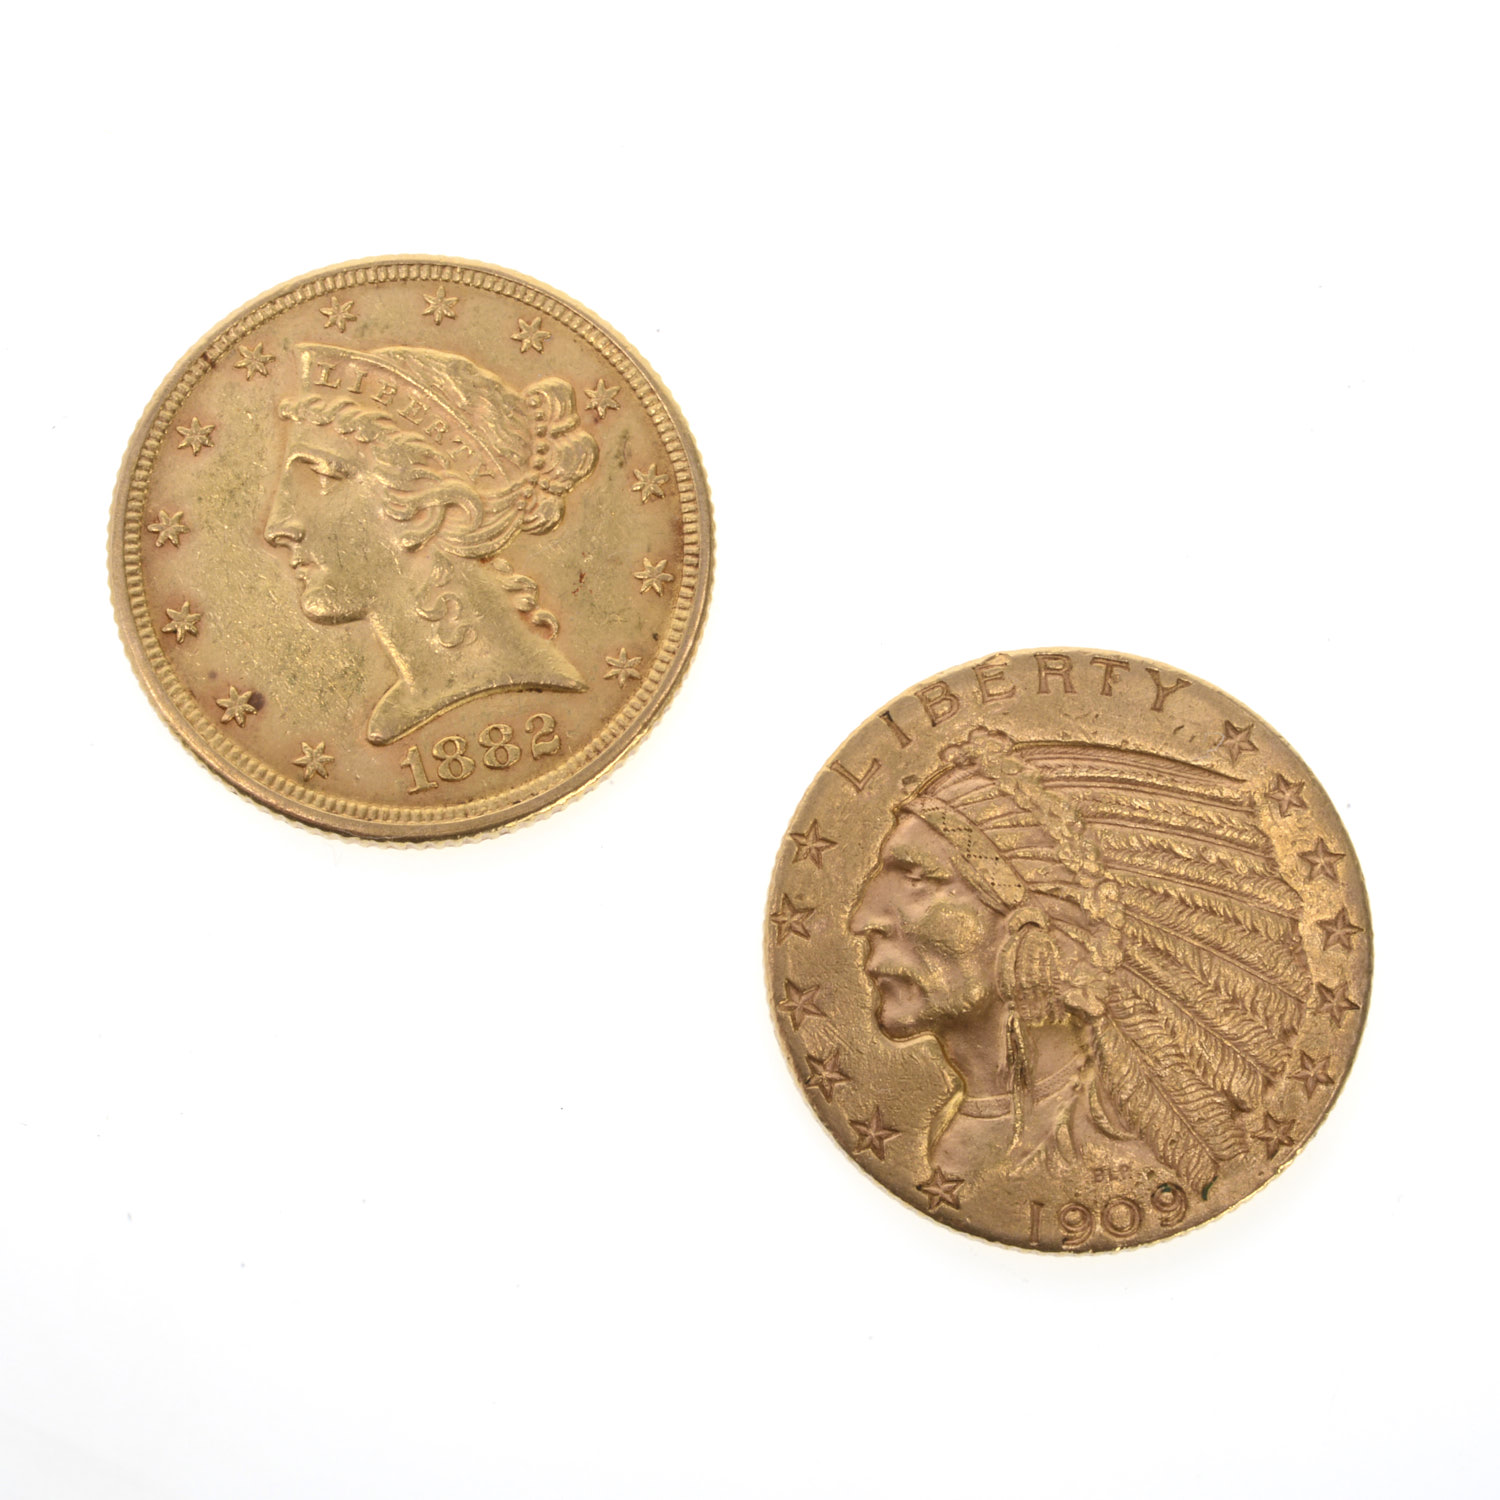 2 American Five Dollar Gold Coins Lofty Marketplace